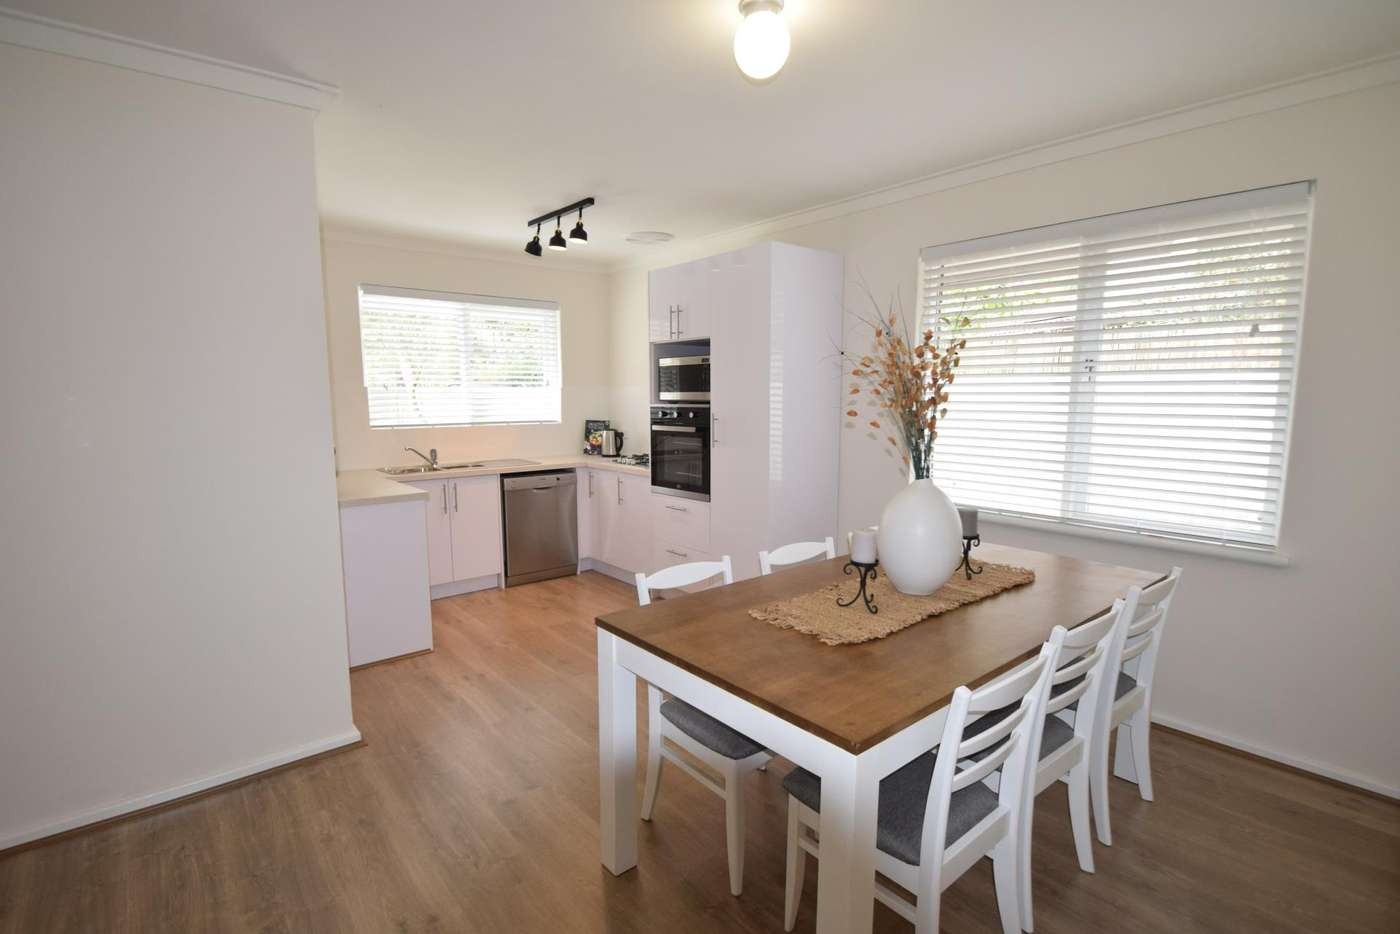 Main view of Homely house listing, 24 Sidcup Way, Kelmscott WA 6111